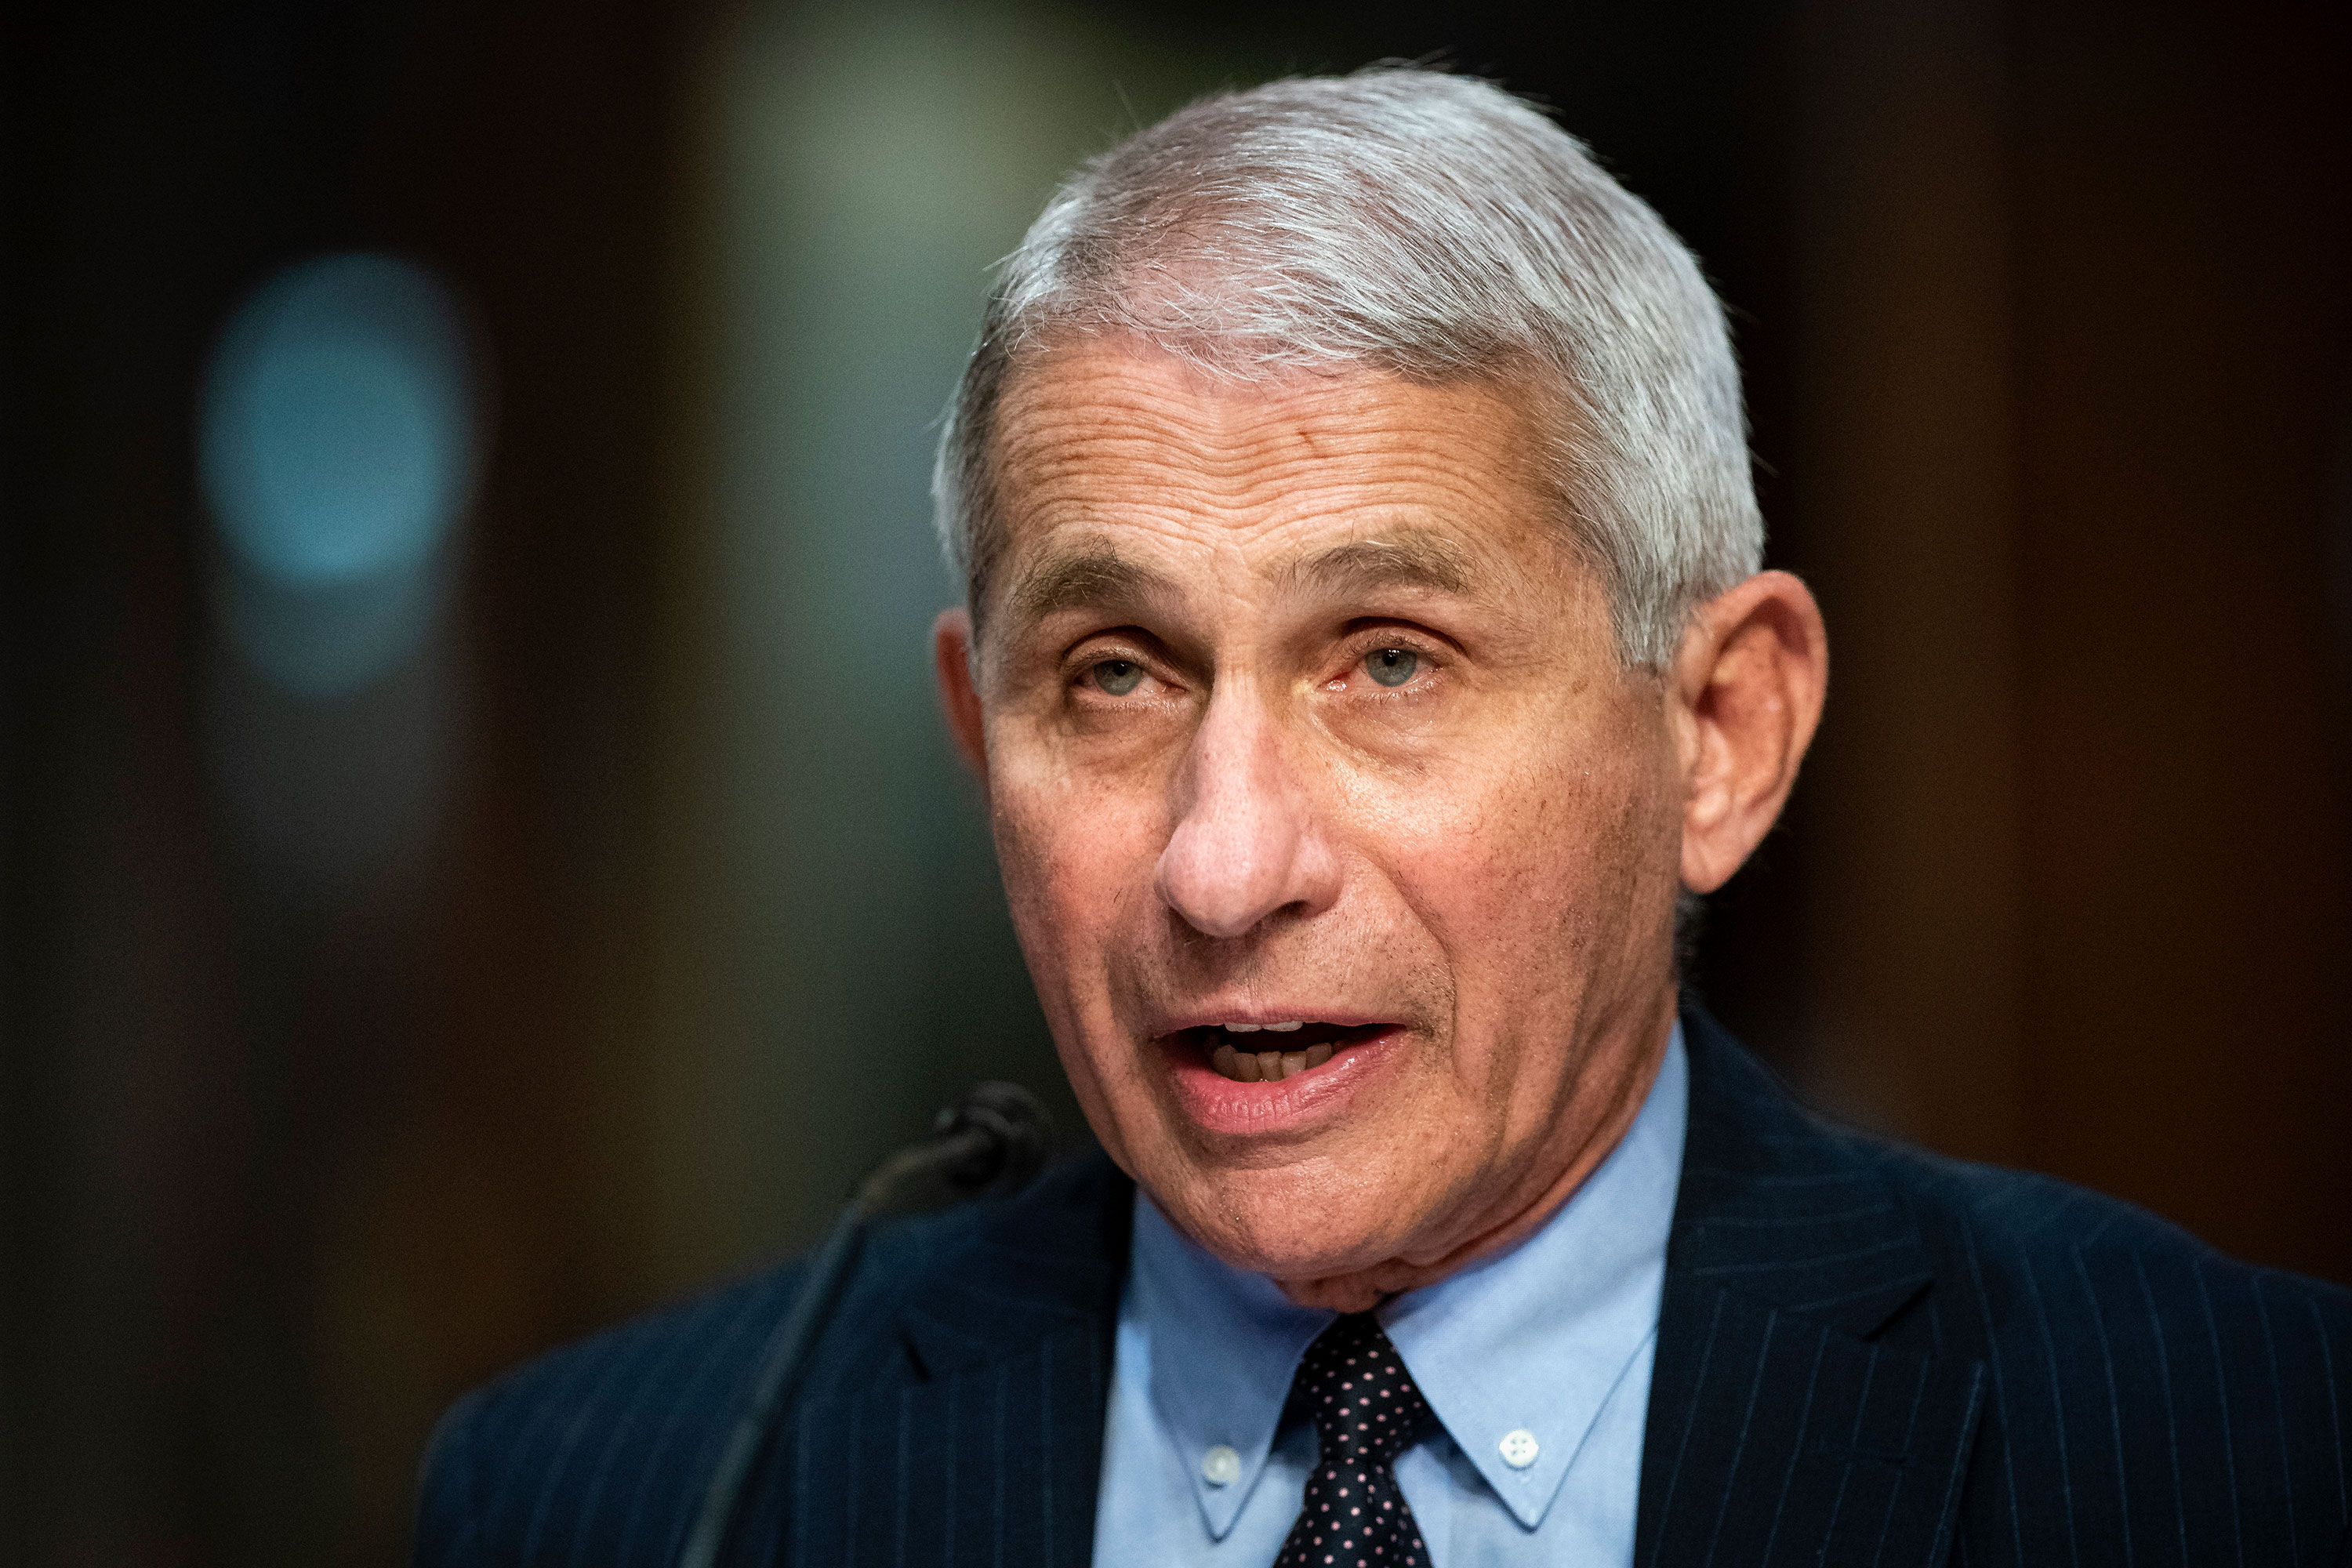 Director of the National Institute of Allergy and Infectious Diseases Dr. Anthony Fauci speaks during a Senate Health, Education, Labor and Pensions Committee hearing on June 30 in Washington, DC.